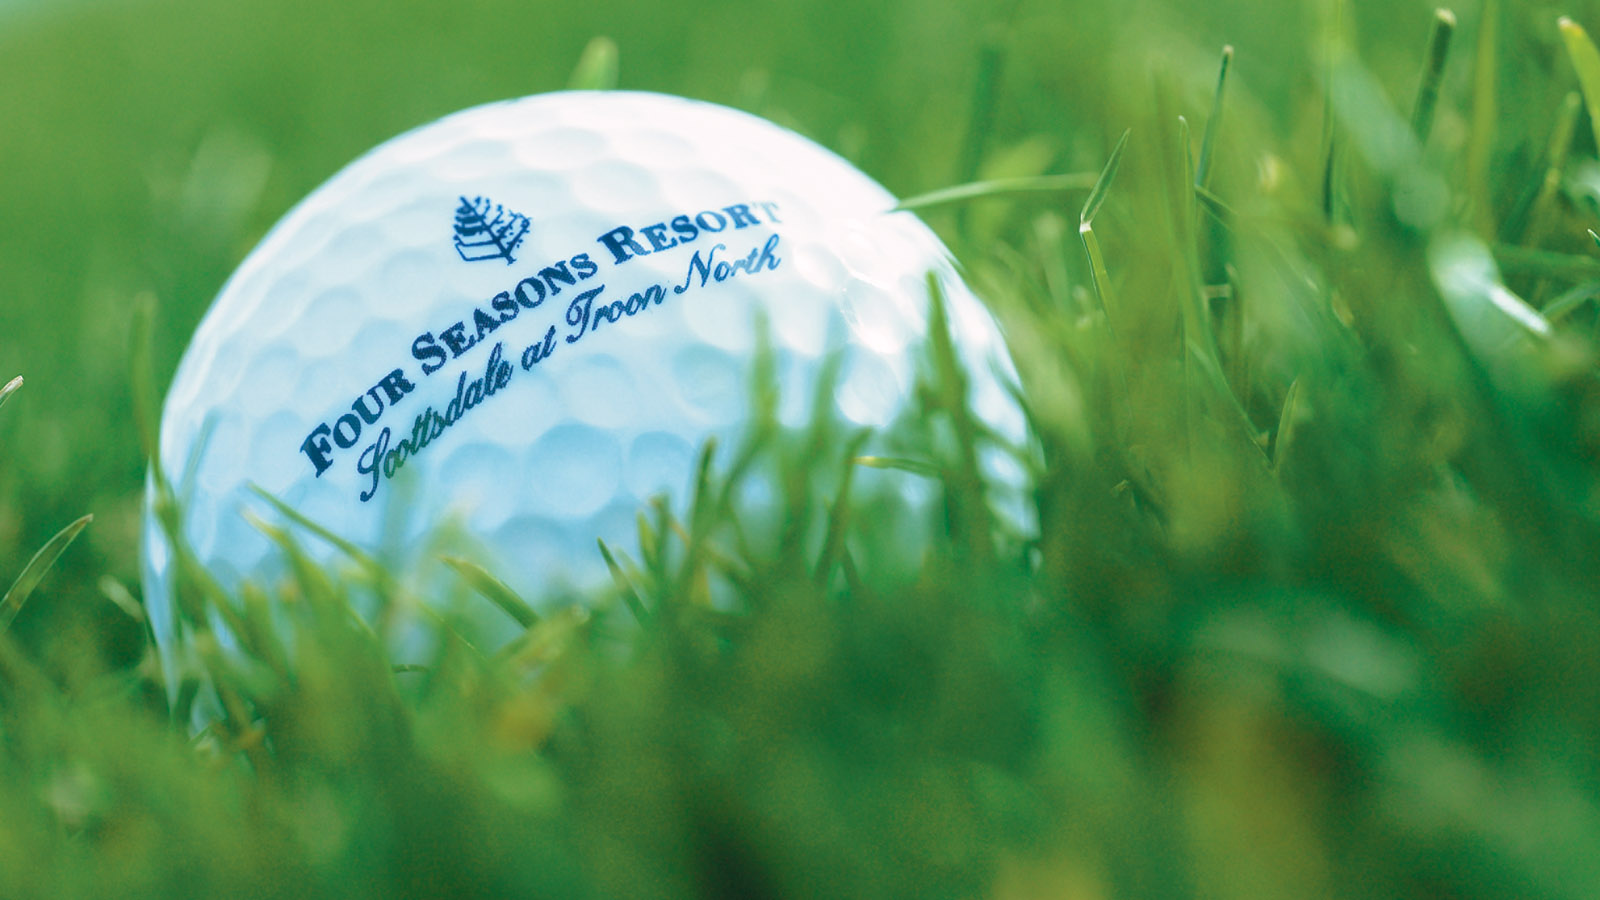 Shanghai West Golf Club – Located 60 Miles from Four Seasons Hotel Shanghai